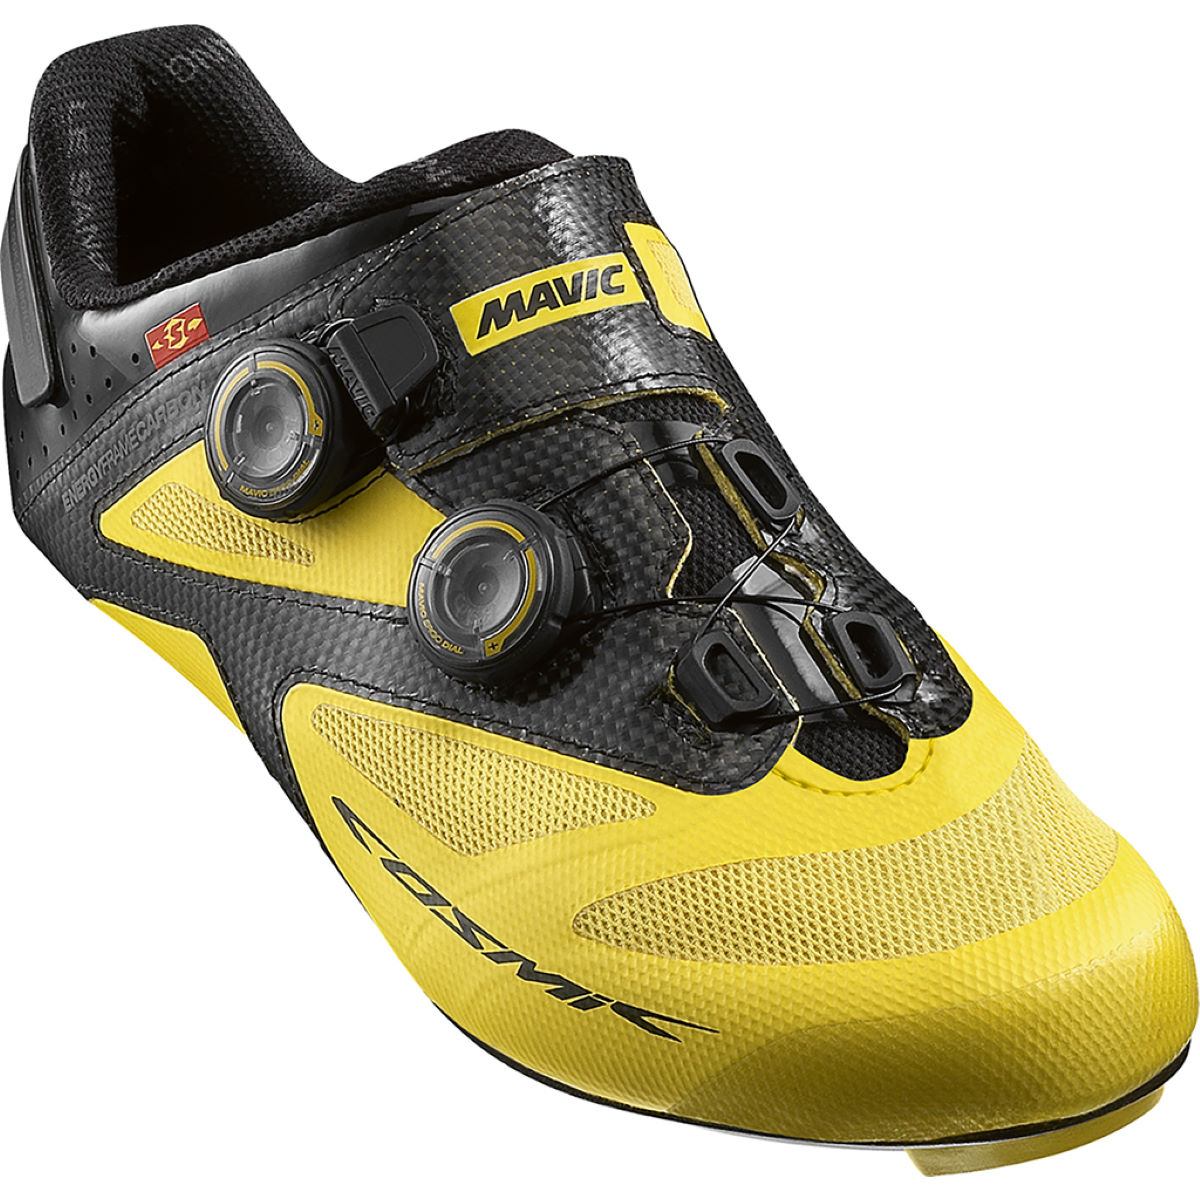 Chaussures Mavic Cosmic Ultimate Maxi Fit - 10,5 UK Jaune Chaussures de route